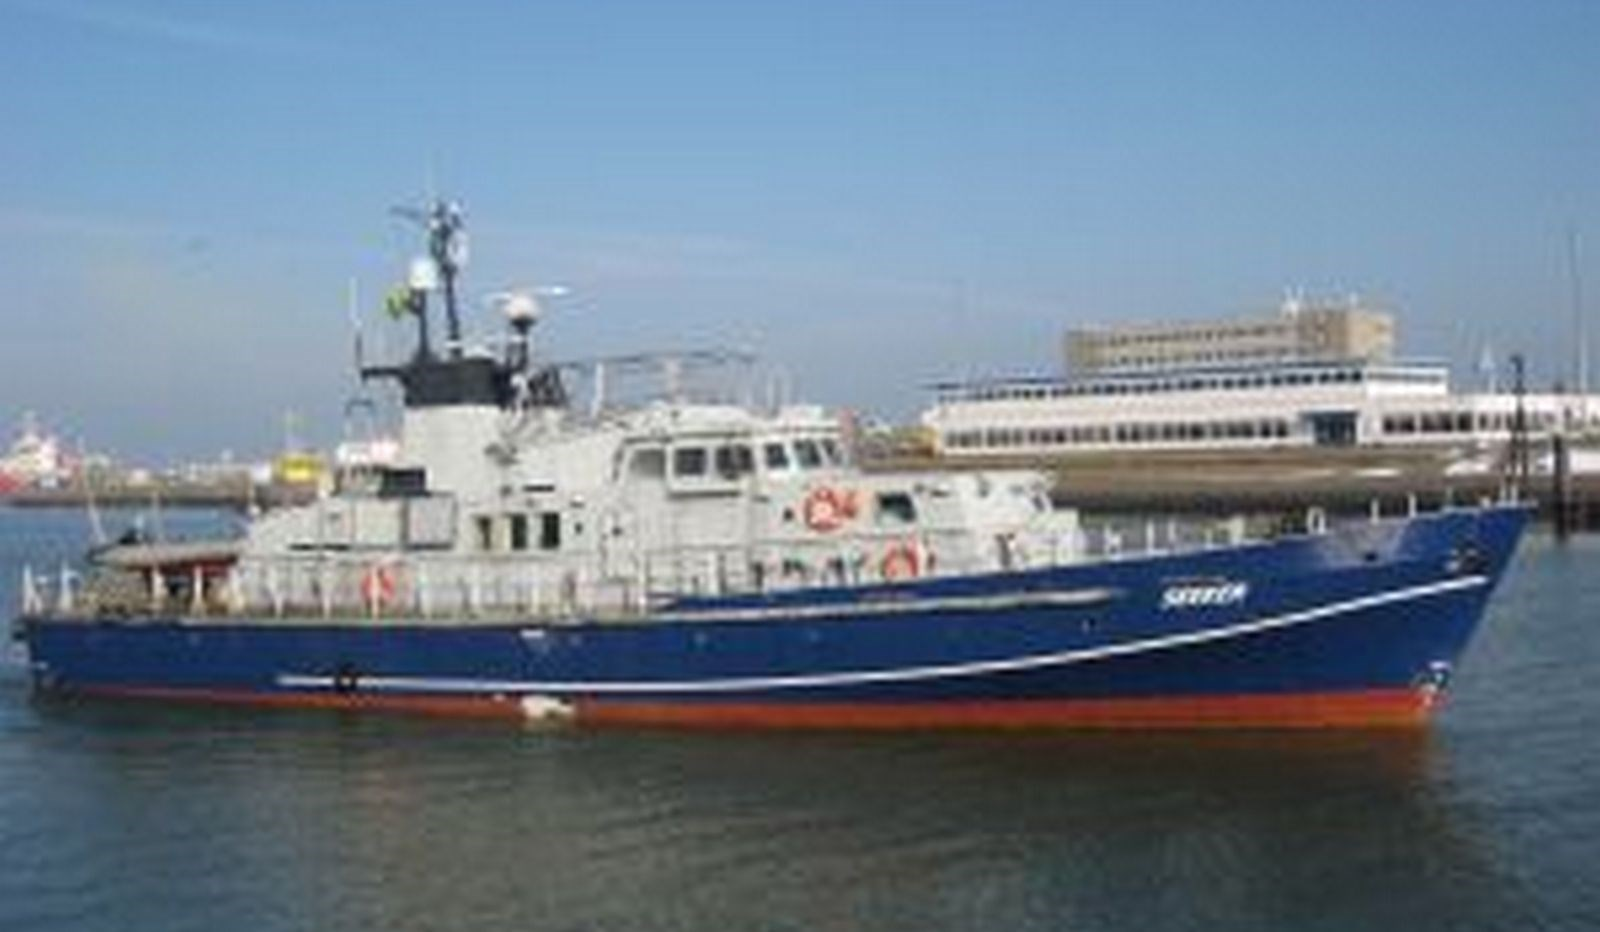 Both patrol boats had a major overhaul and refit at Scheepswerf Visser in Den Helder and left on own keel from Rotterdam to Lagos, Nigeria Monday 1st of March.